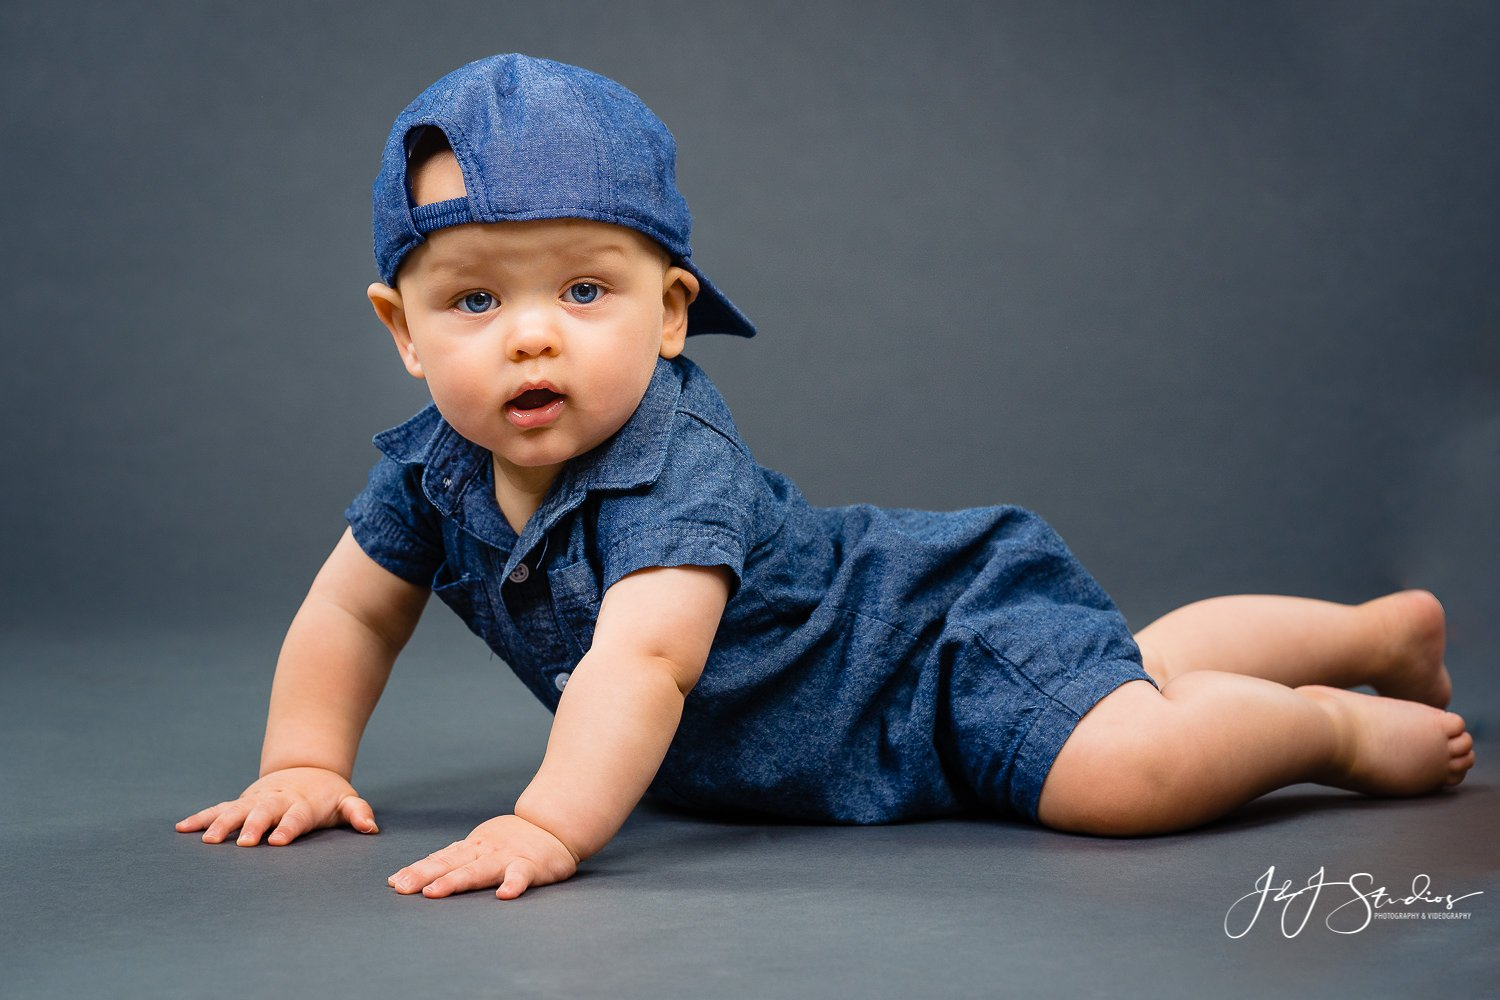 8 month baby photoshoot